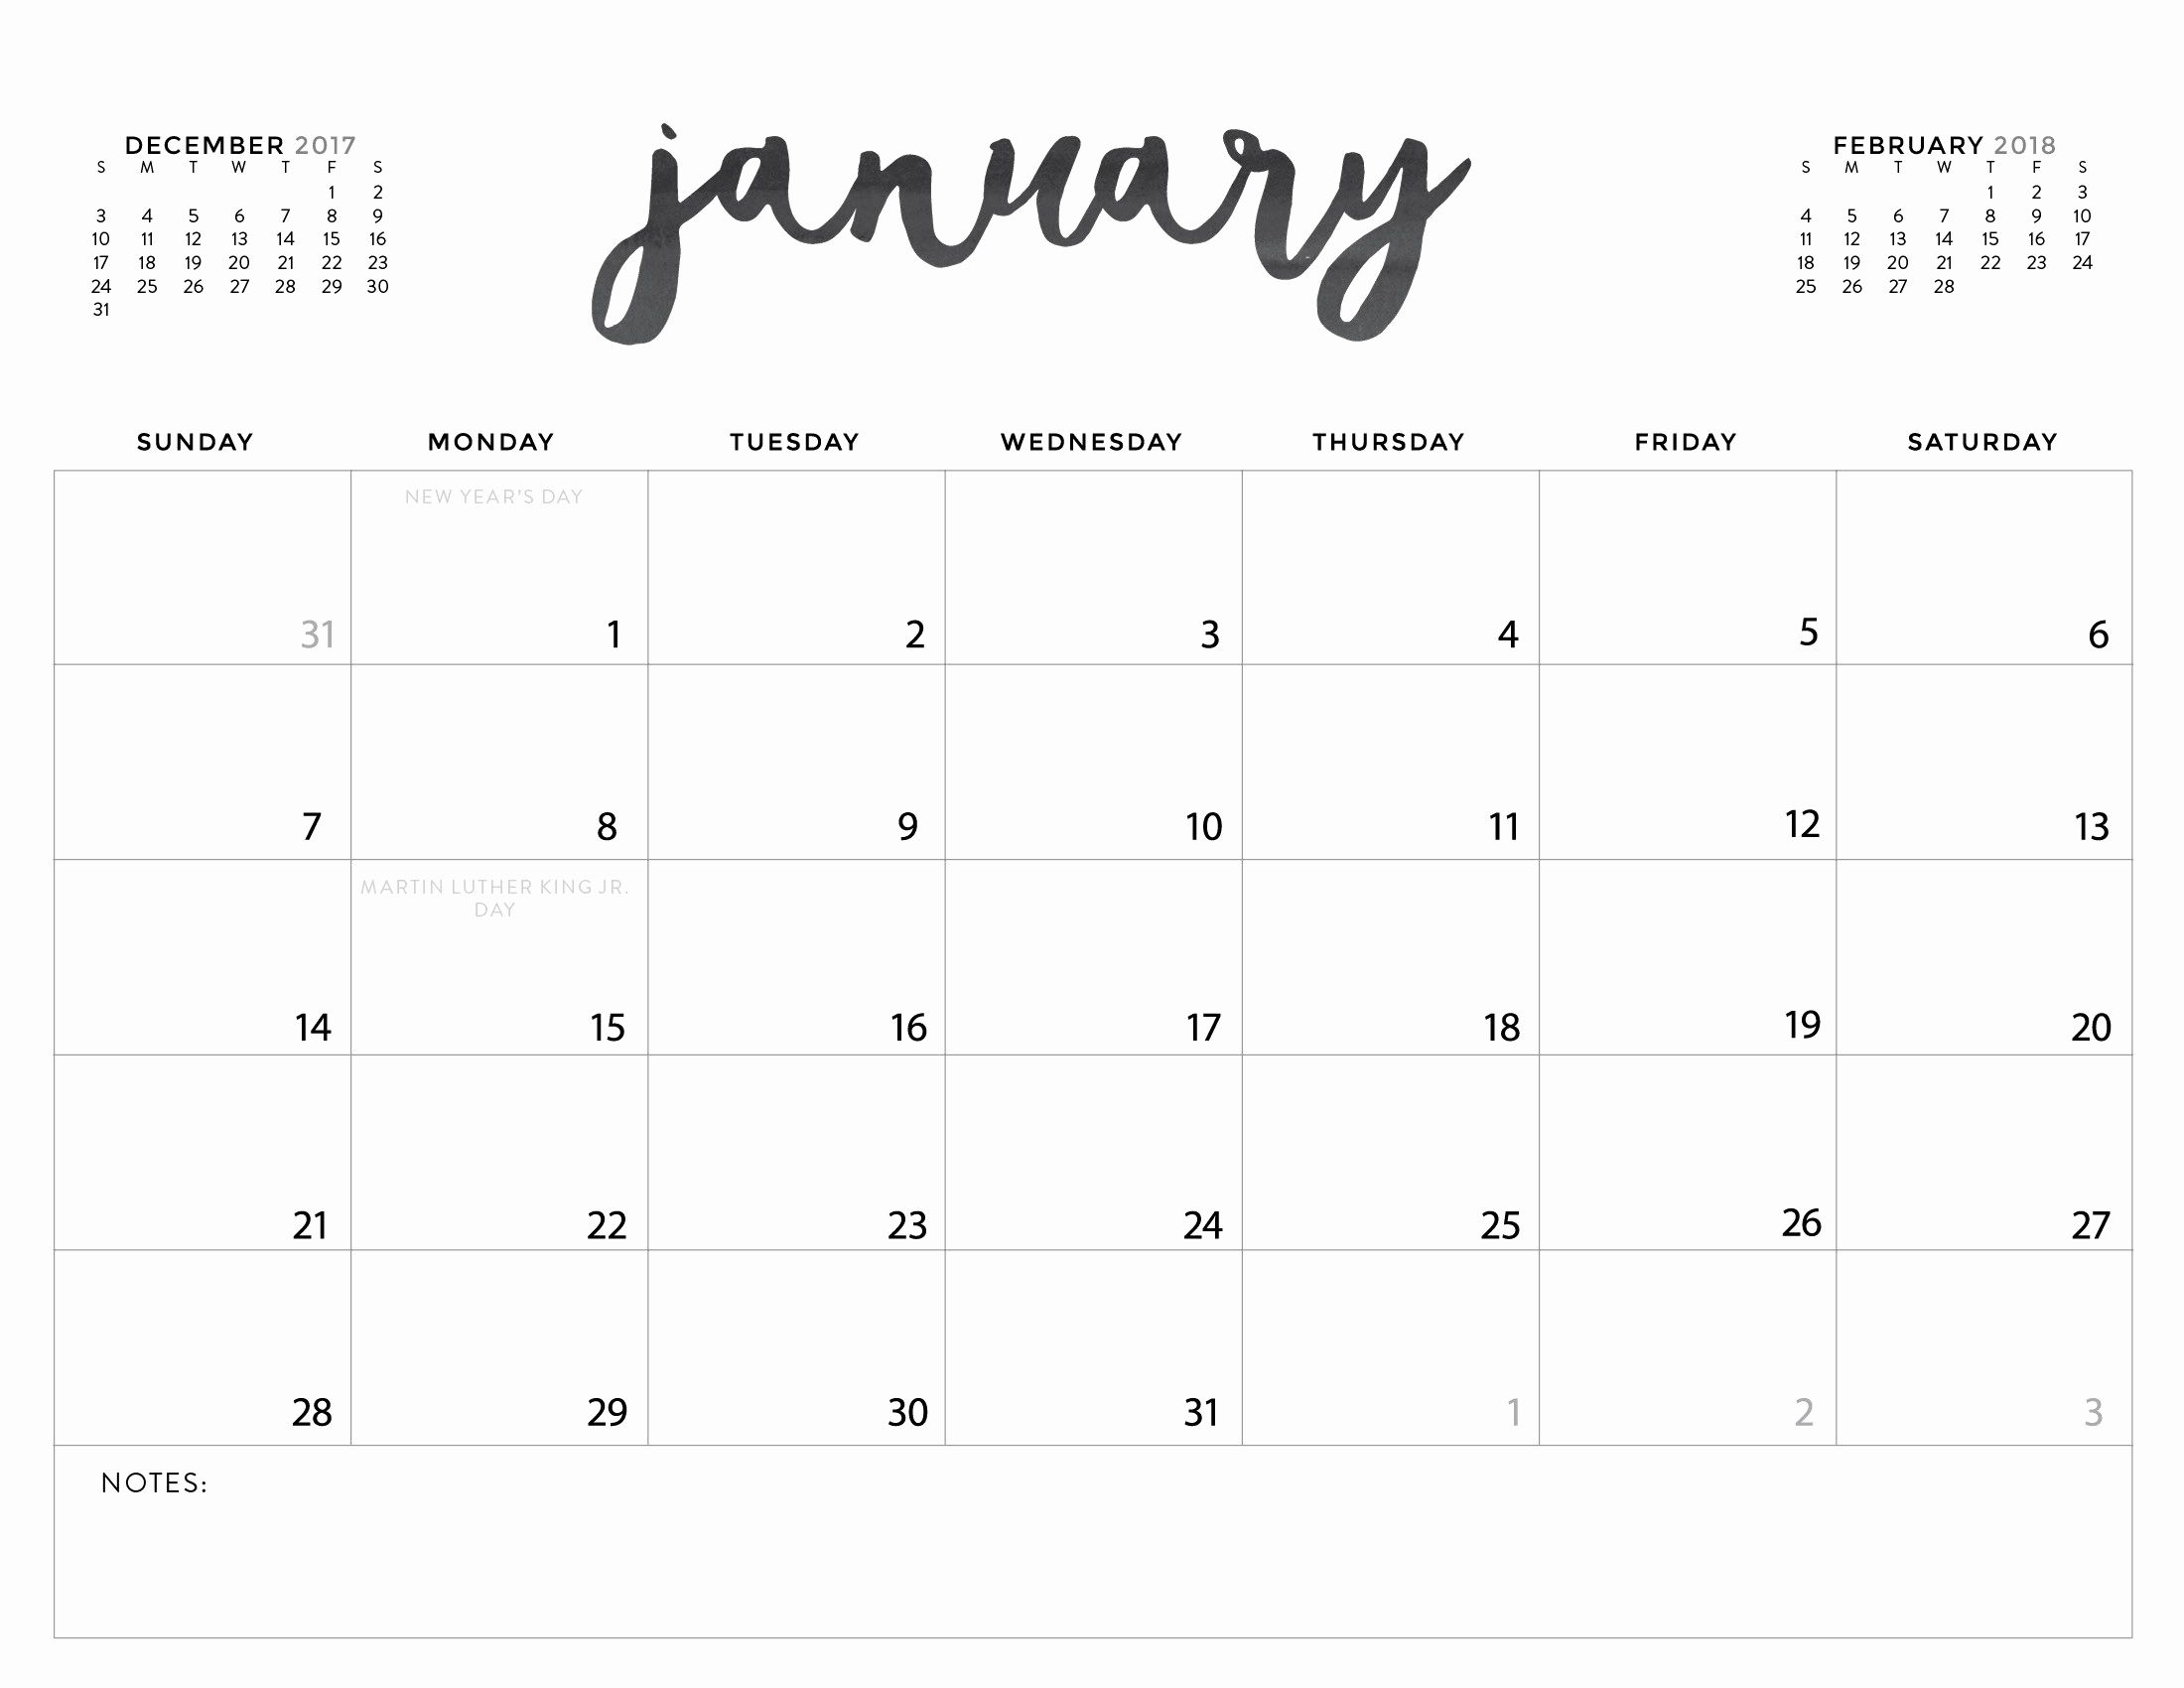 Free Printable Calendar Without Download In 2020   Calendar inside Print Free Calendars Without Downloading 2020